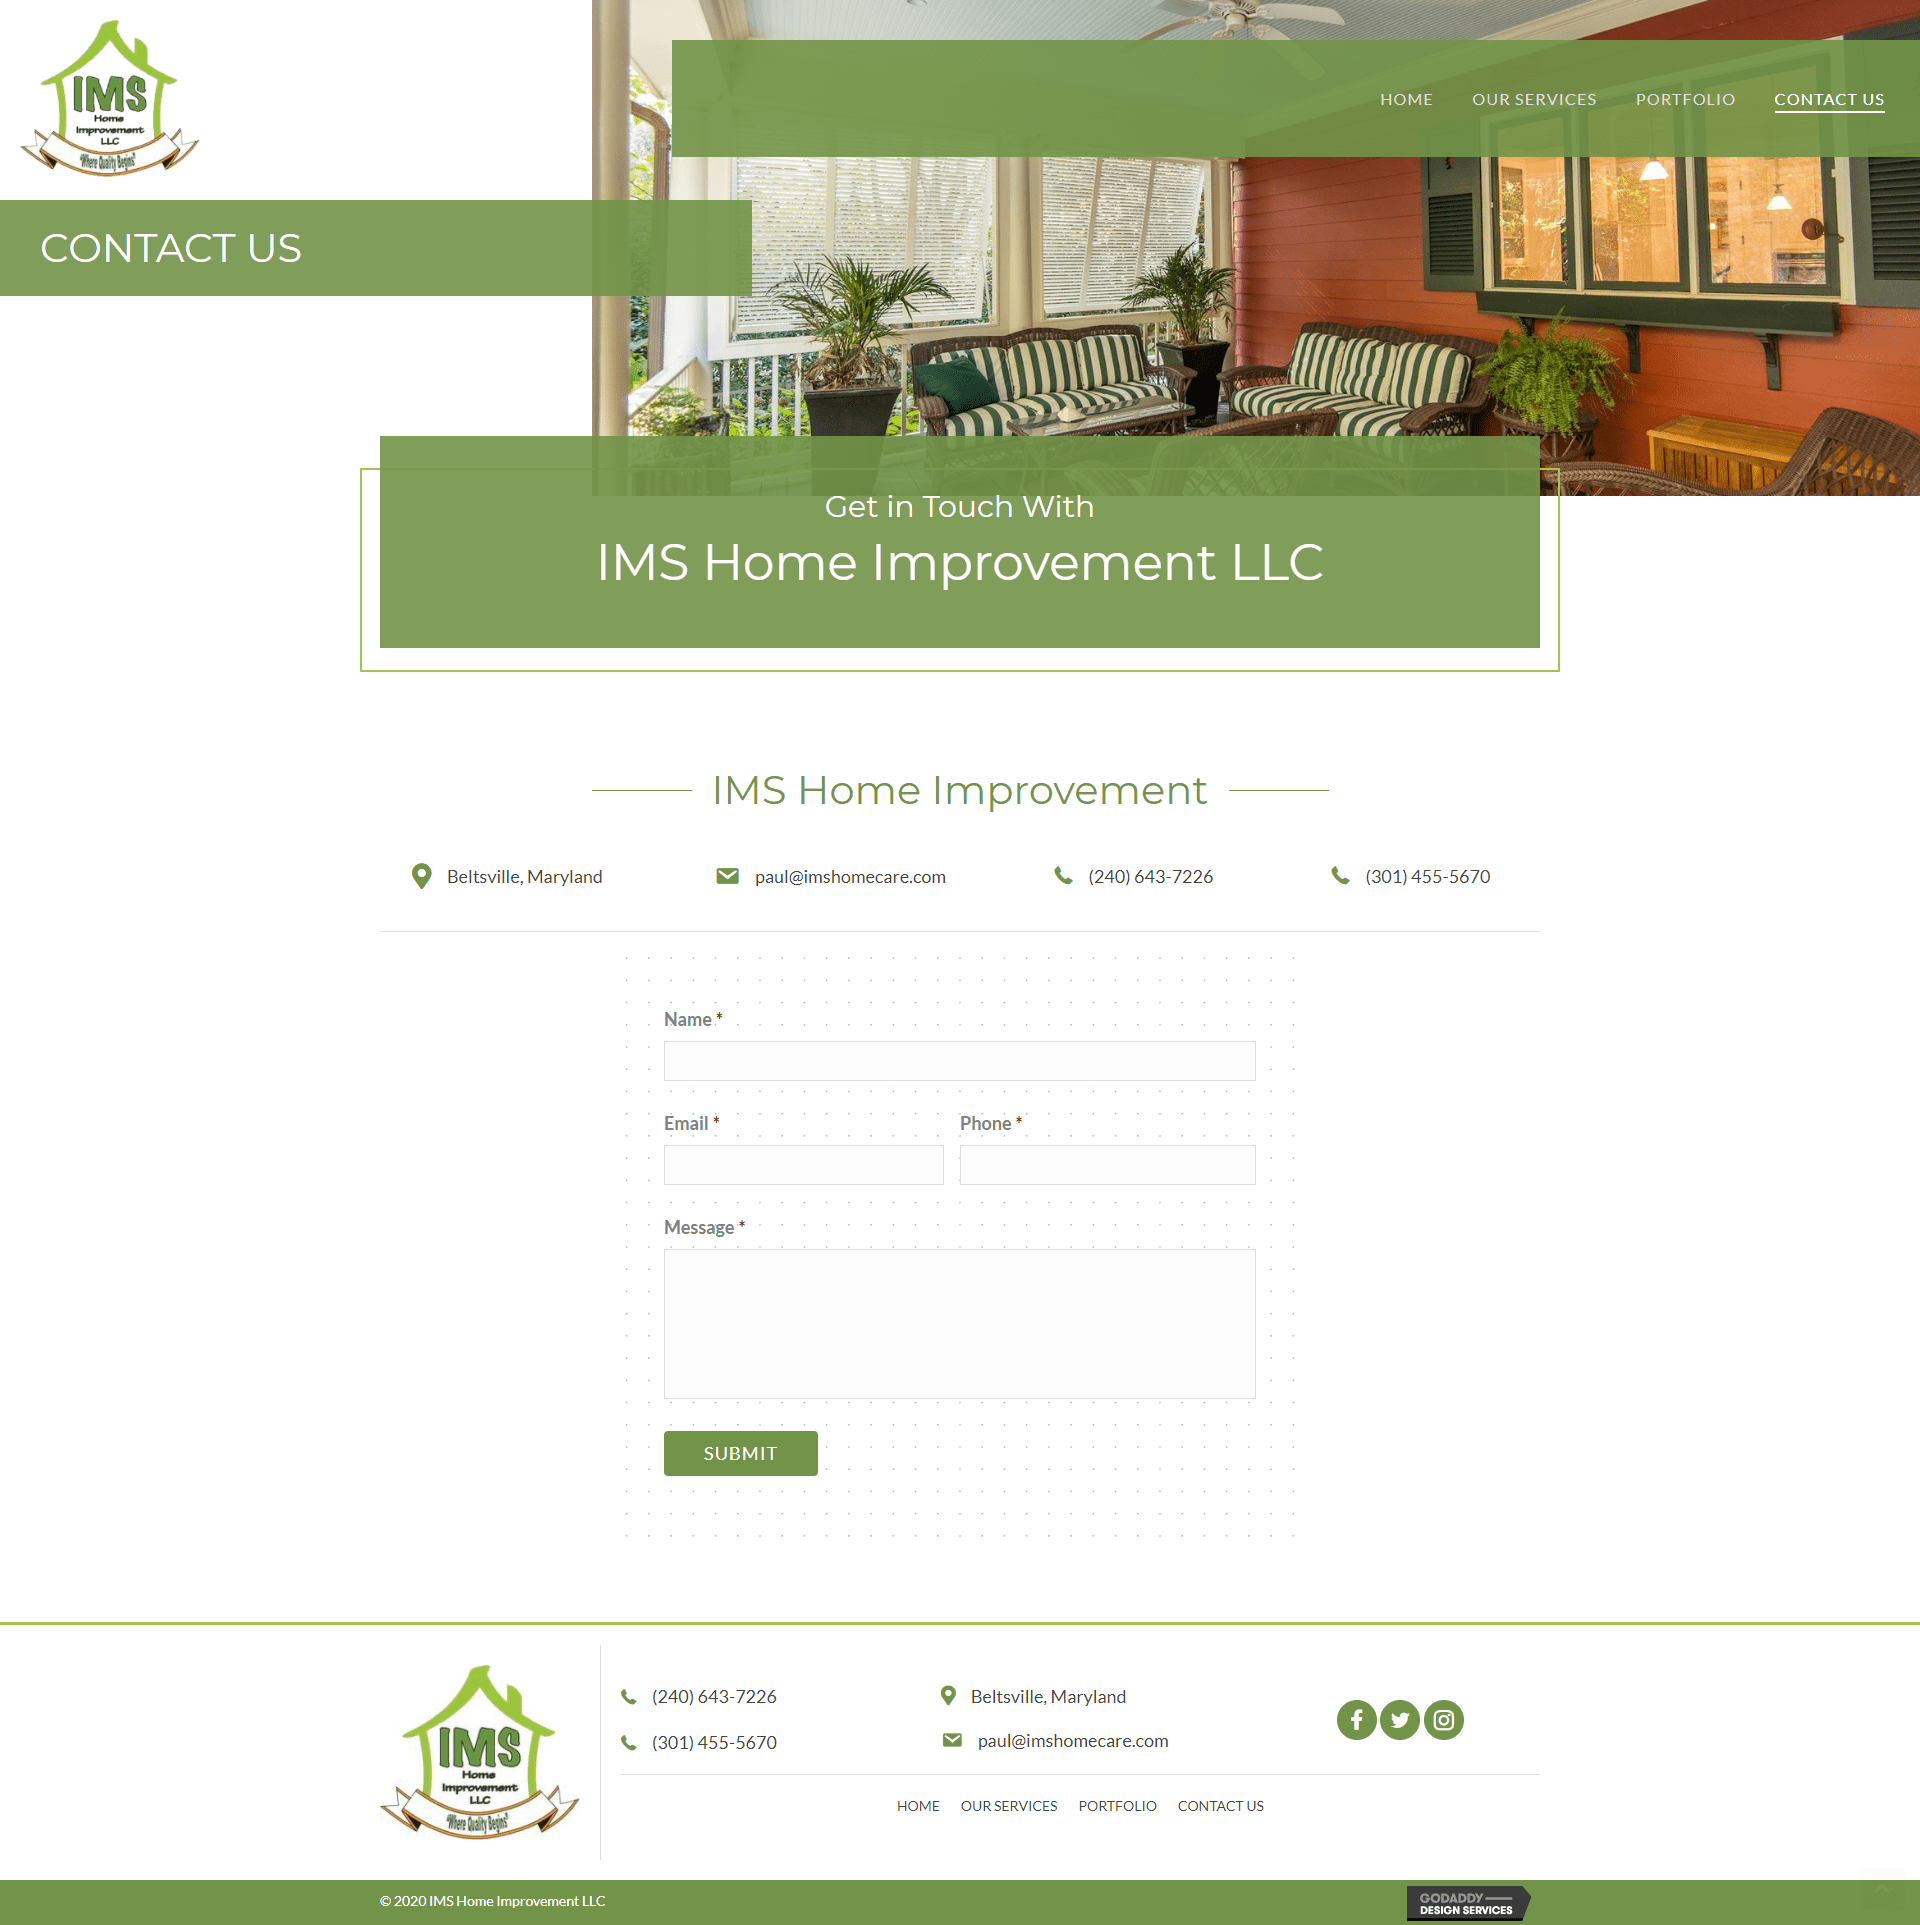 IMS Home Improvement Contact Page